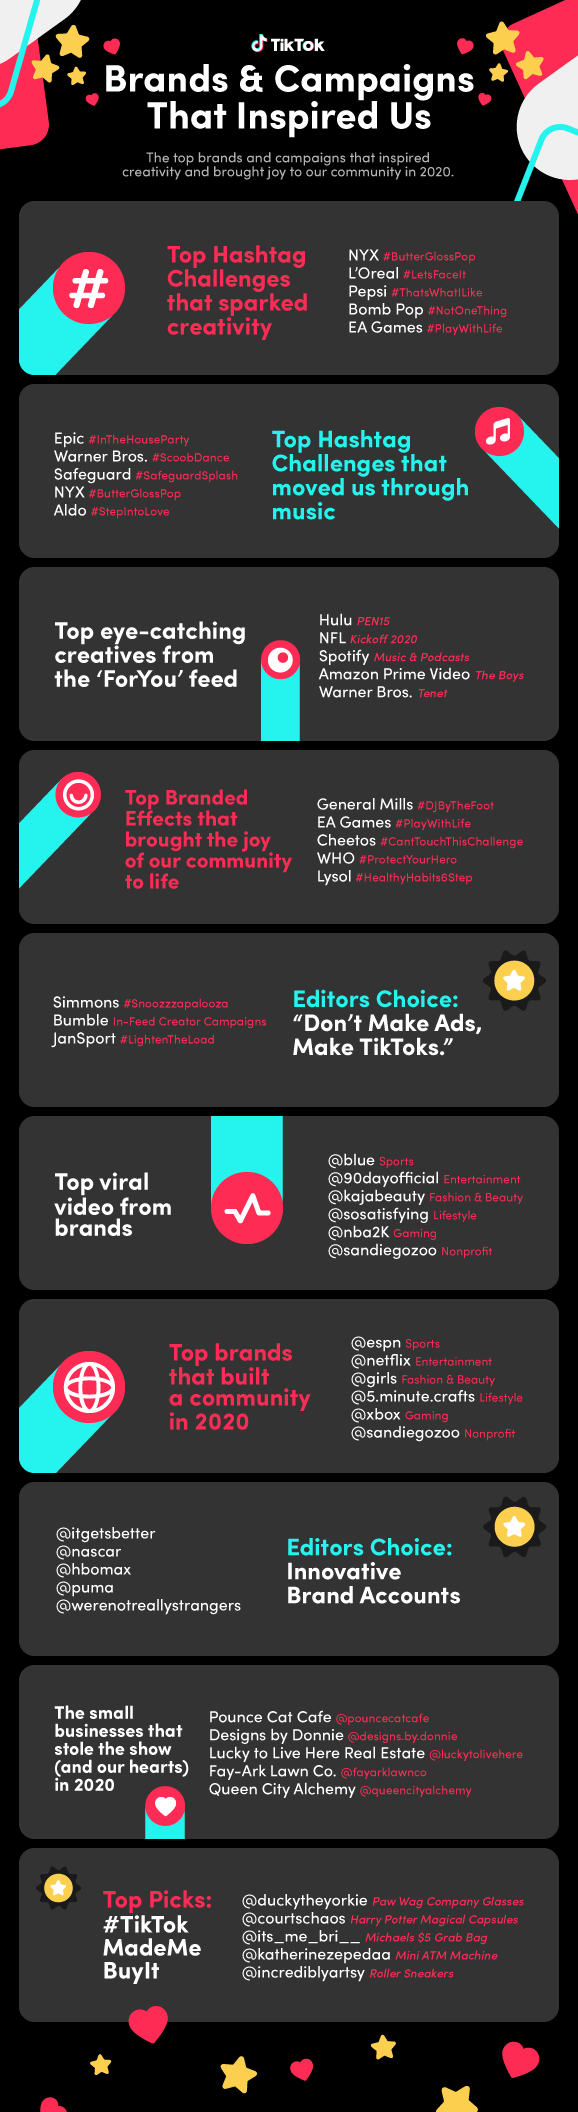 Tiktok Shares Its Top Brand Campaigns Of 2020 Infographic Social Media Today Social Media Infographic Brand Campaign Infographic